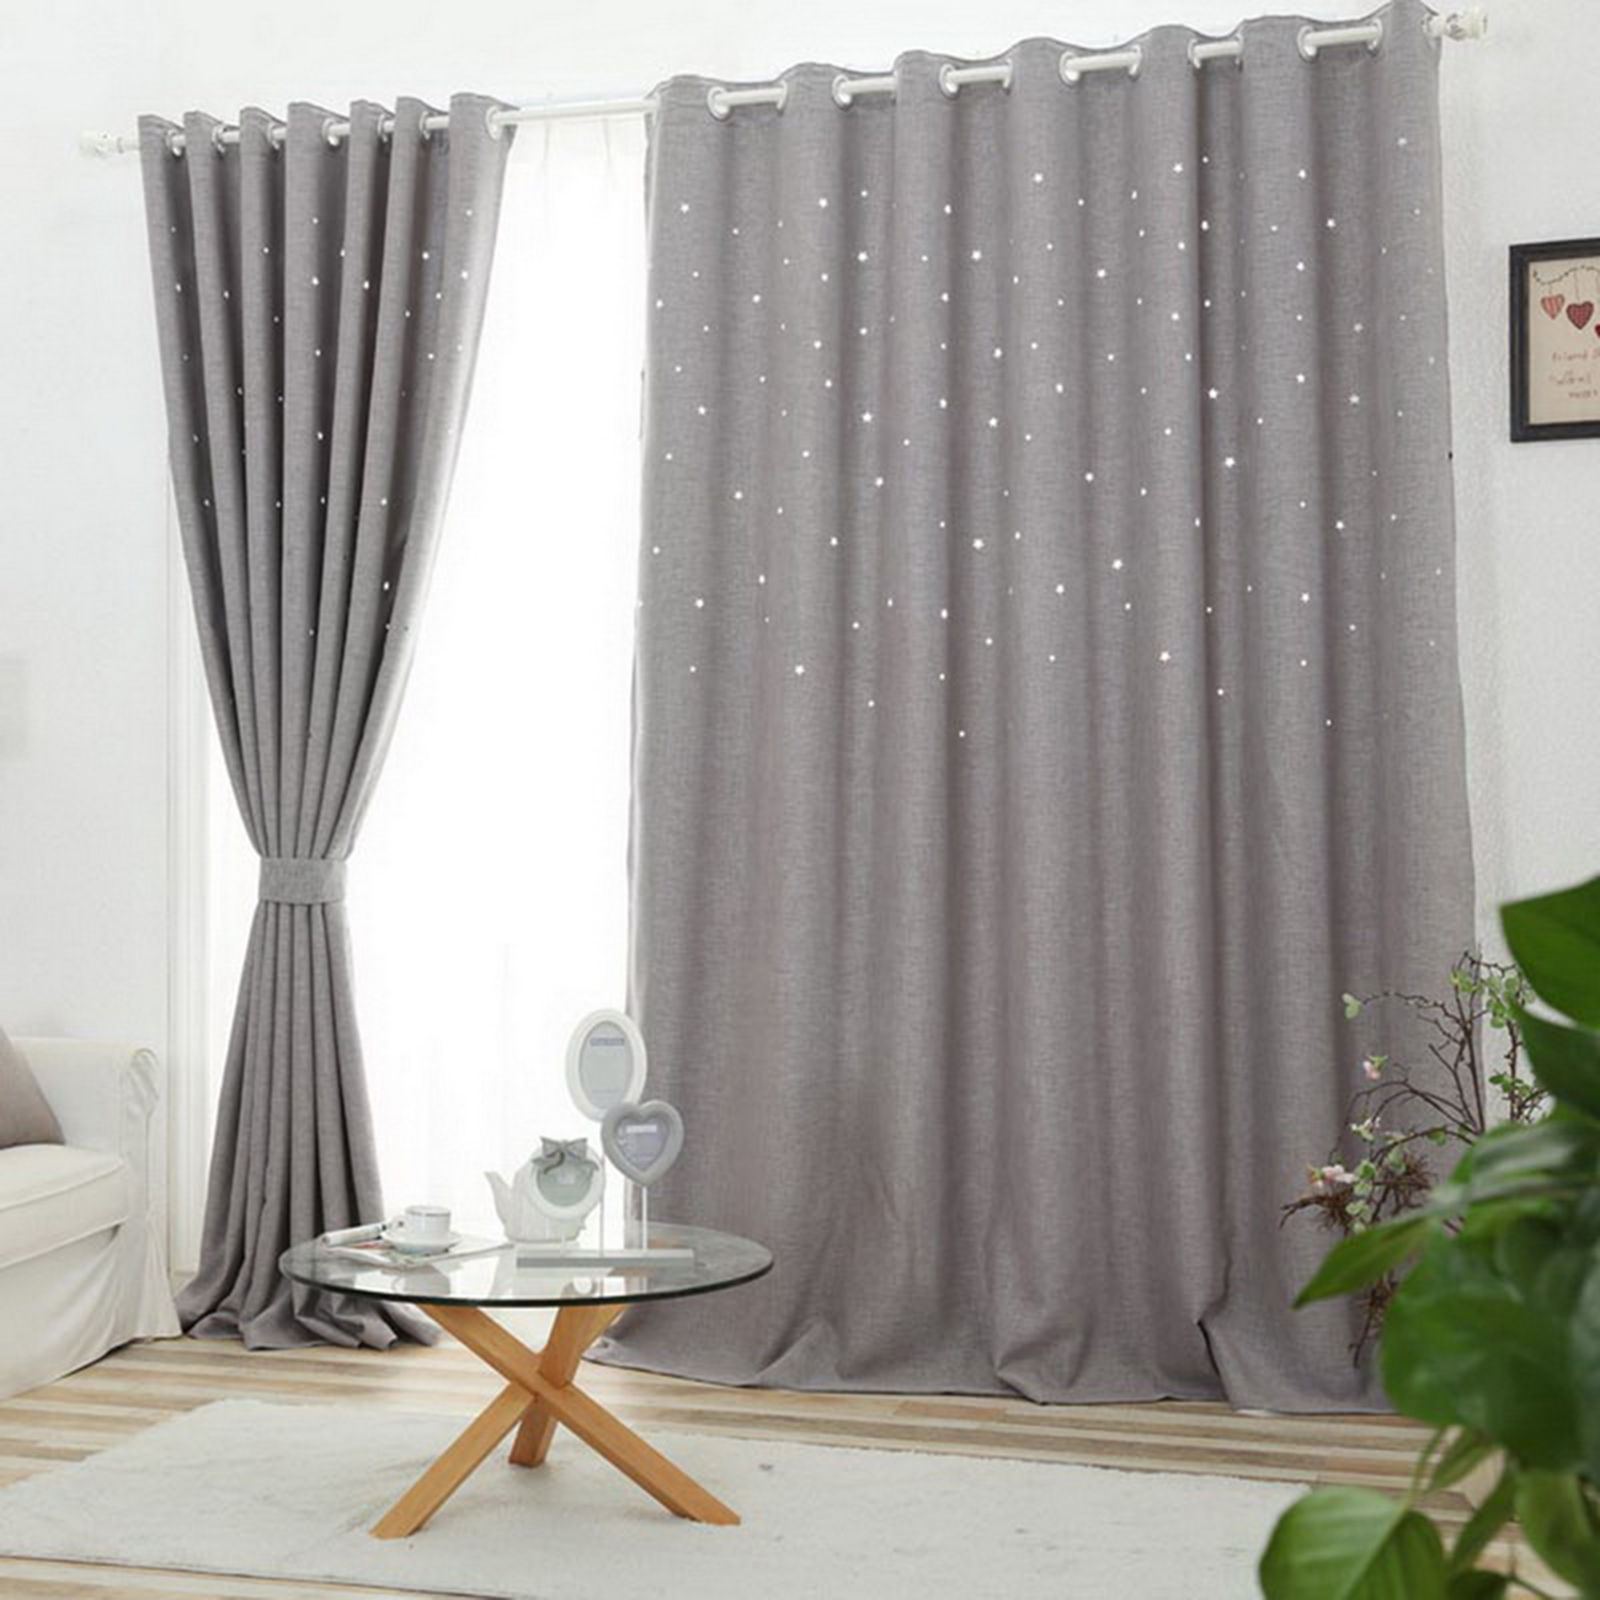 panel product grommet majestic living window blackout room beyond for bed bath hei wid lined curtain qlt store